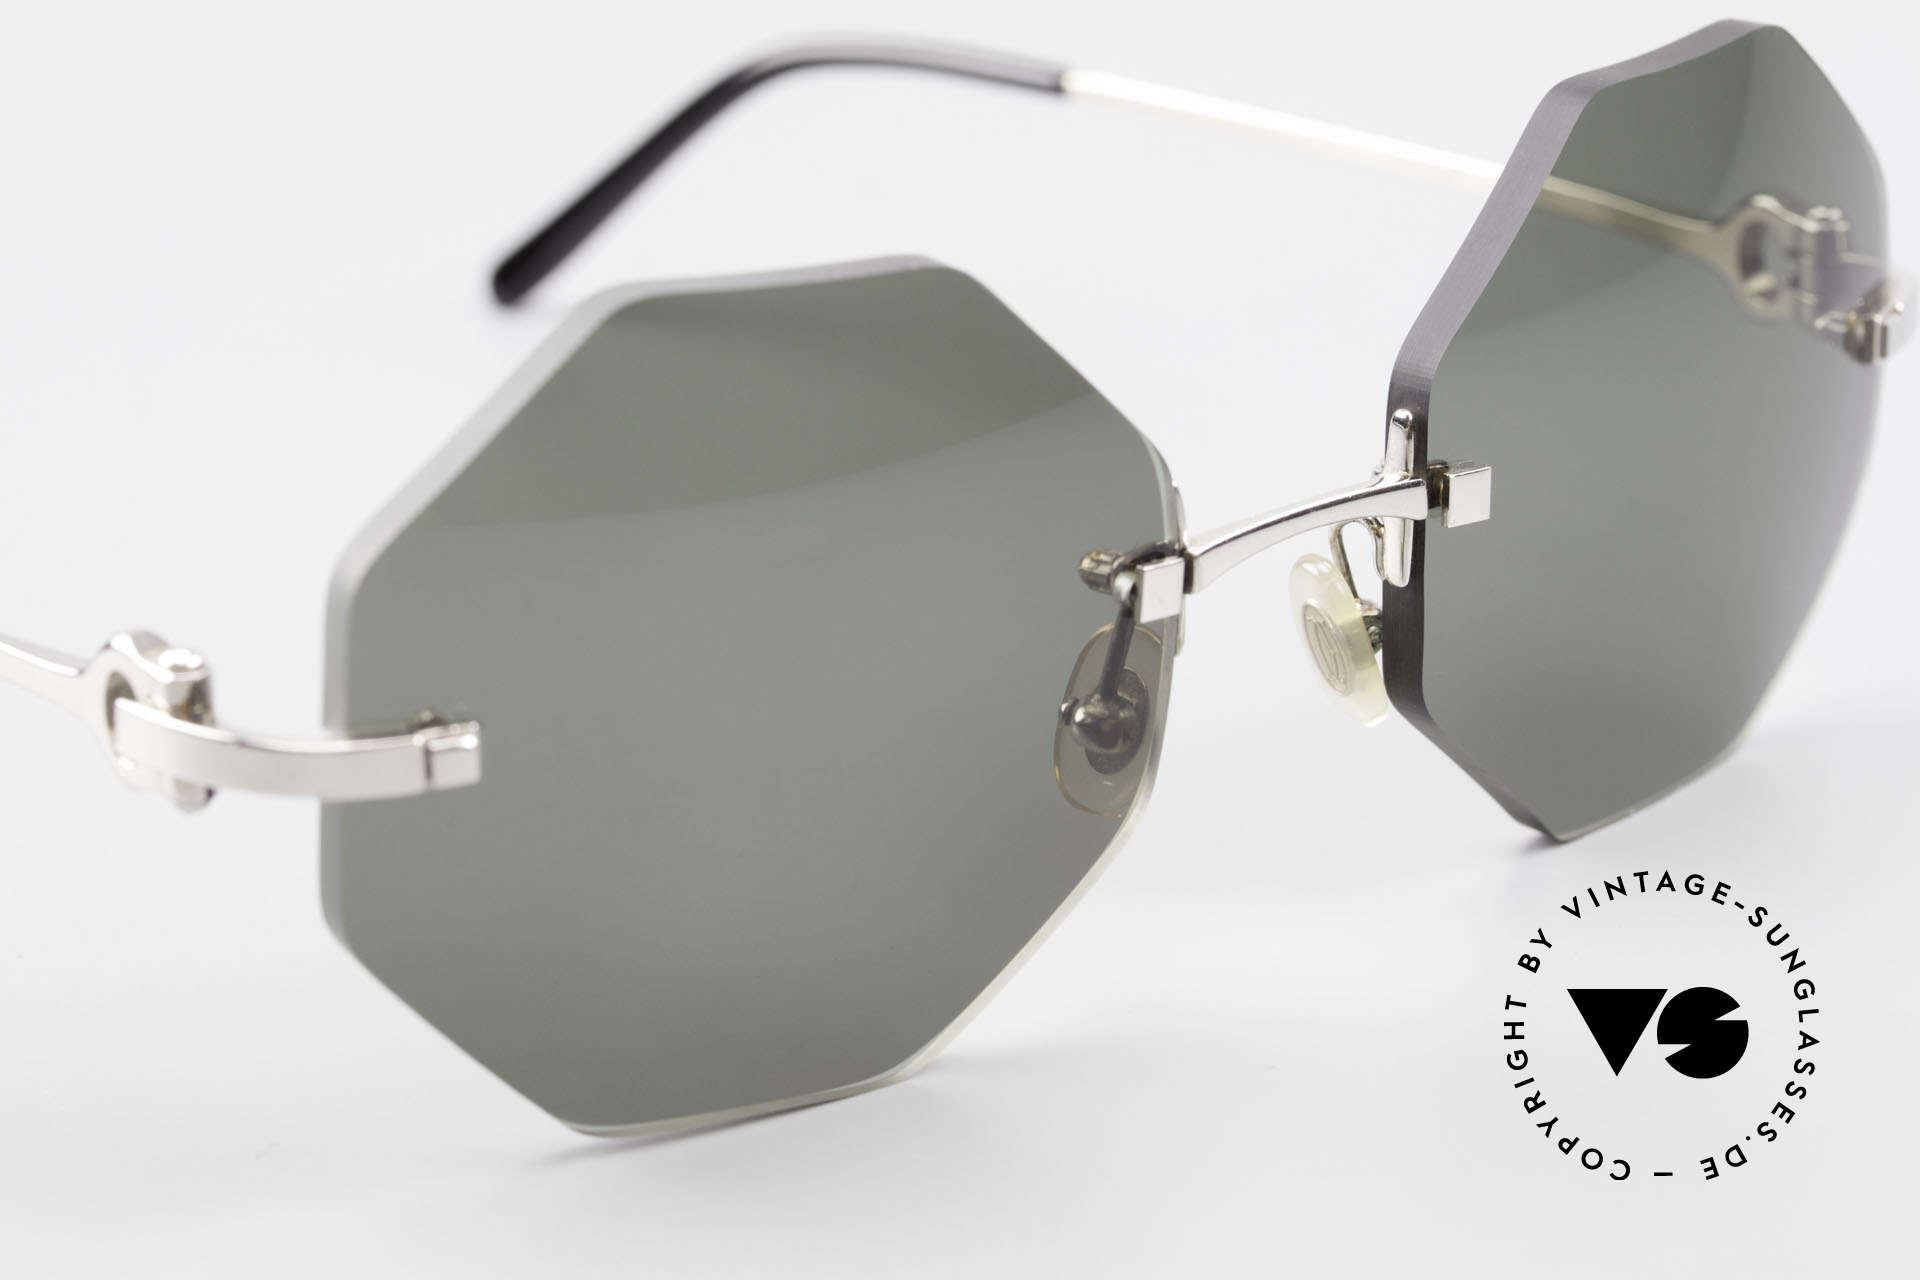 Cartier Rimless Octag Octagonal Luxury Sunglasses, 2nd hand model, but in mint condition + orig. case, Made for Men and Women